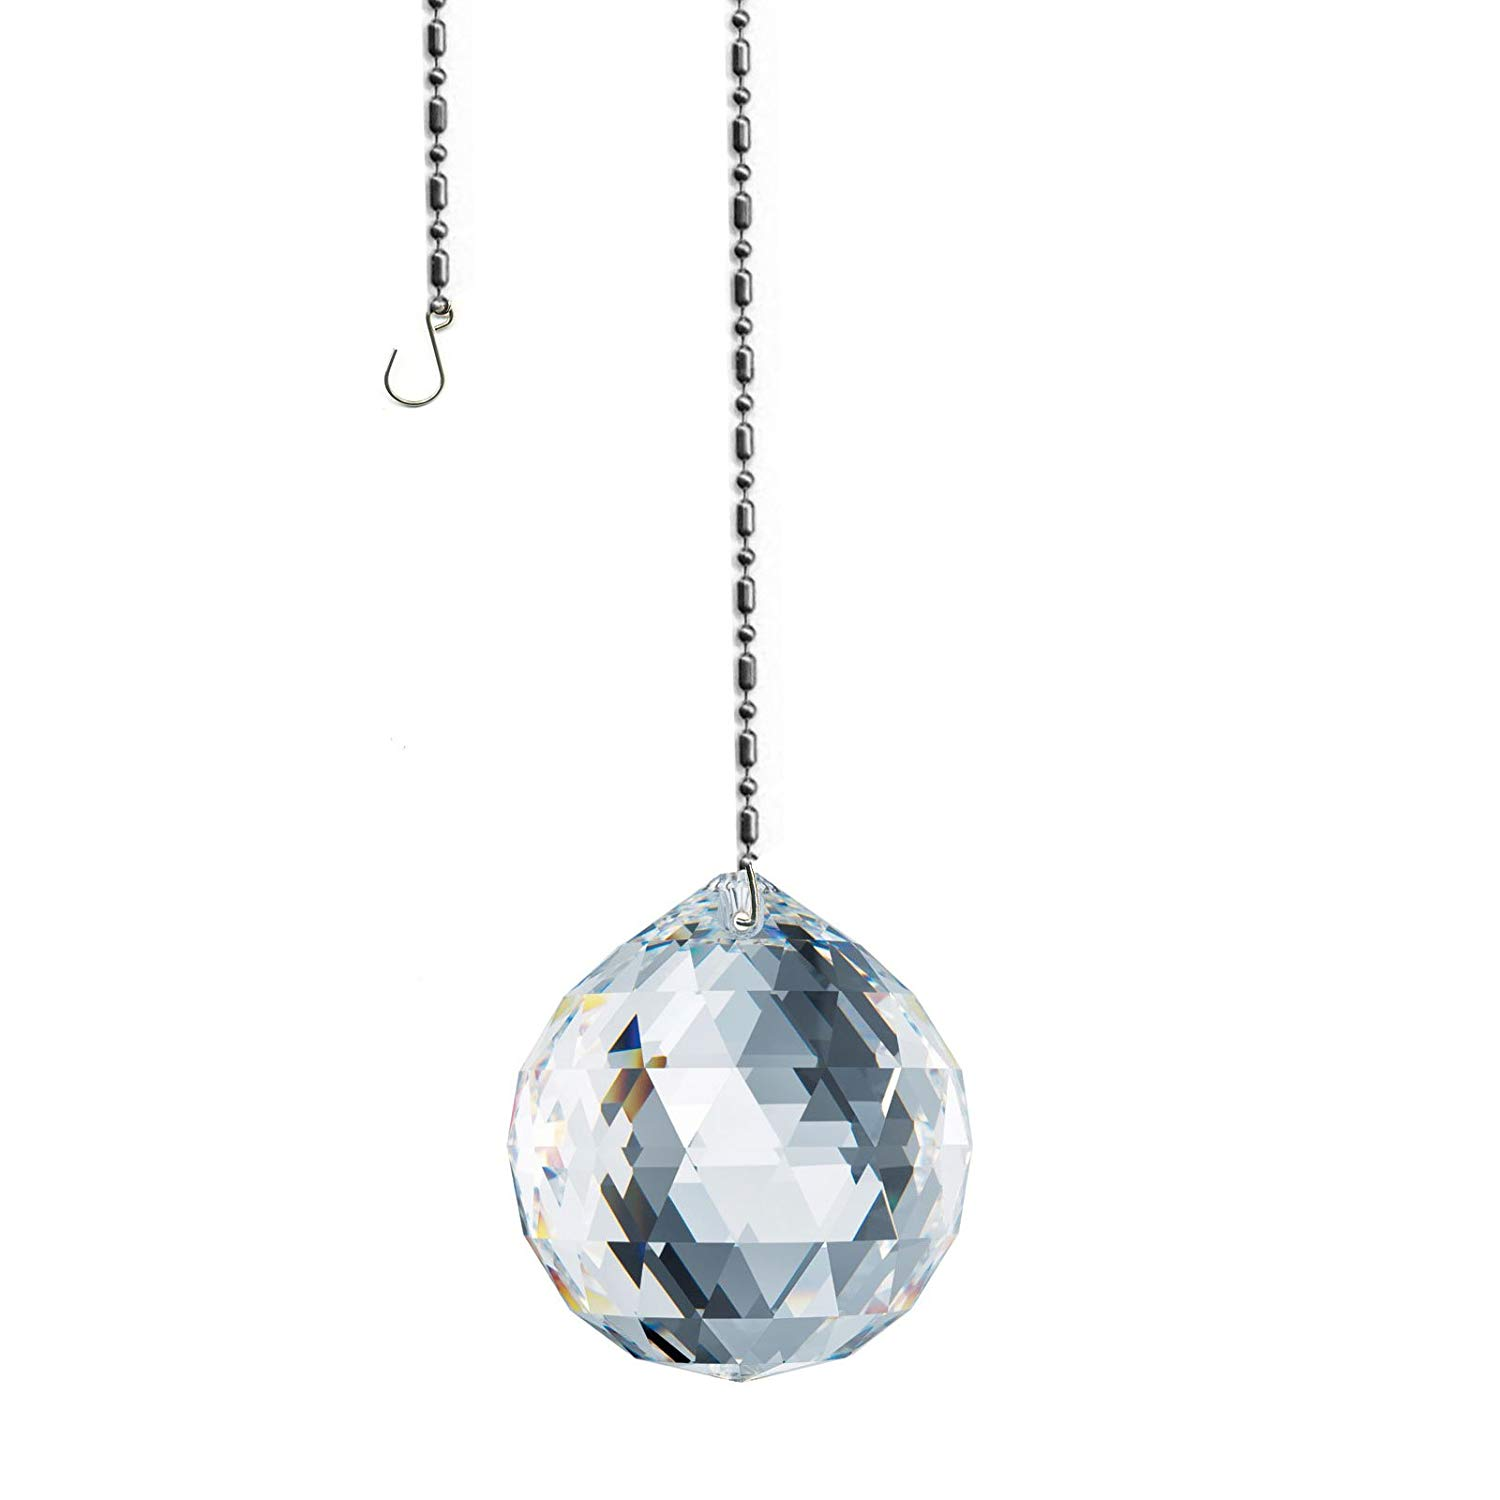 Swarovski 30mm Ball Prism Suncatcher, Rainbow Maker, Feng Shui Crystal - Made with Authentic Swarovski crystal from Austria for Flawless Amazing Clarity & Shine